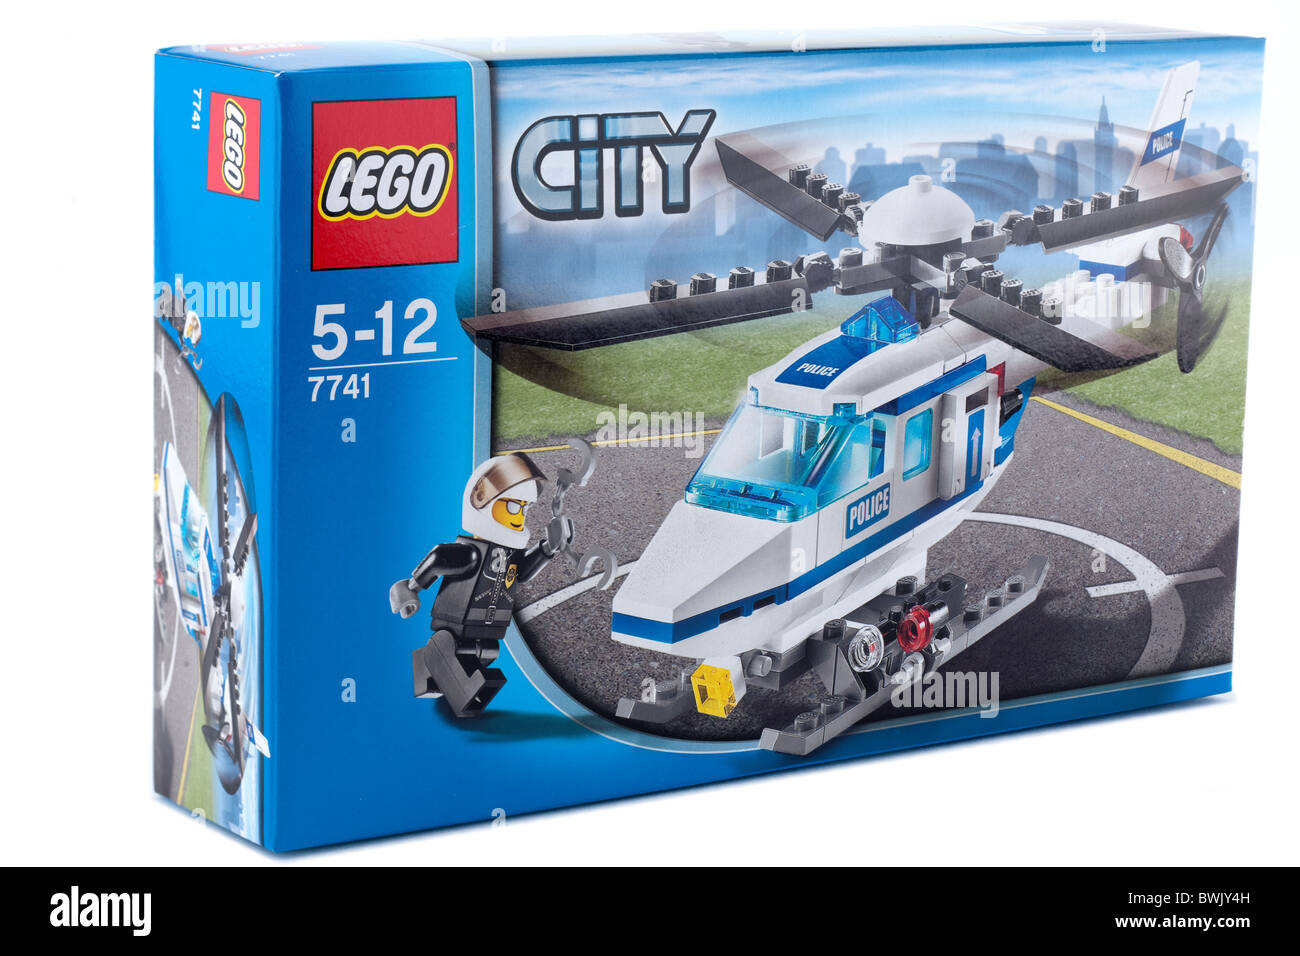 Boxed lego toy police helicopter for children aged 5 to 12 - Stock Image